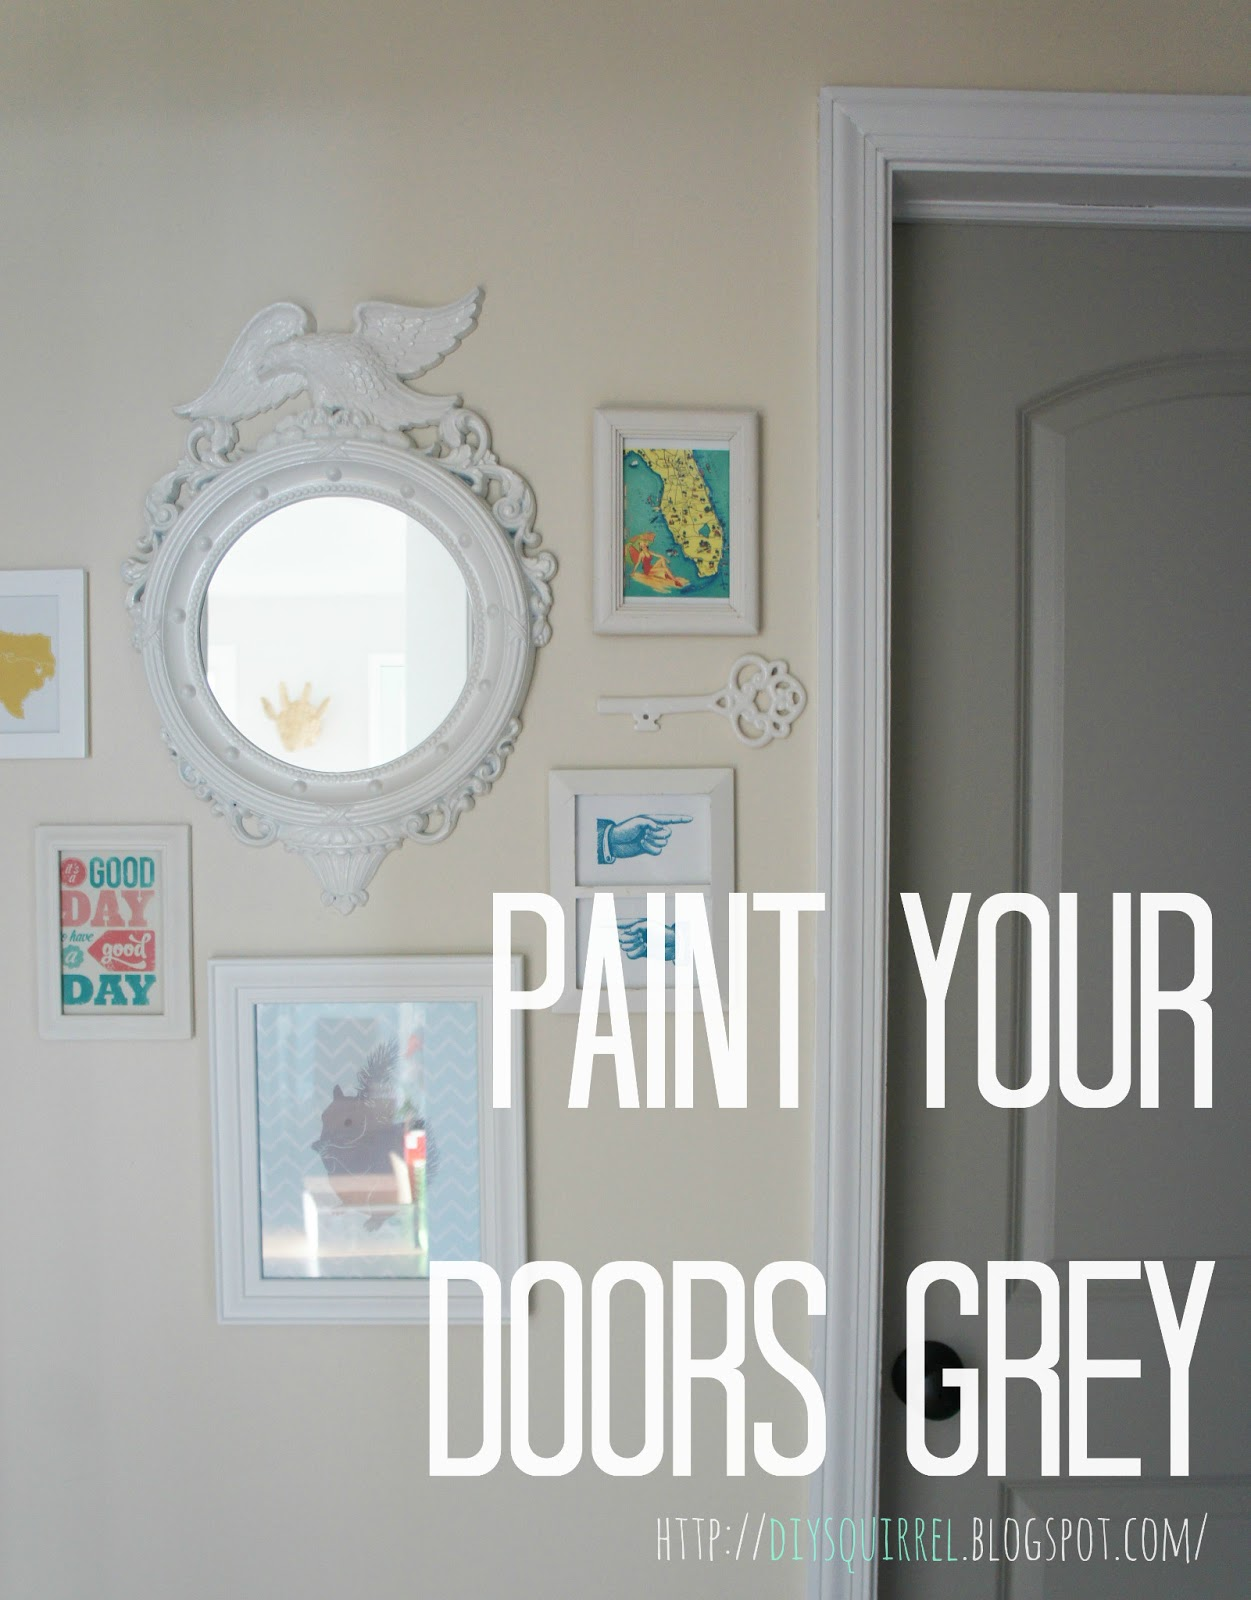 Diy squirrel it 39 s taupe ally grey right for Painted interior door designs